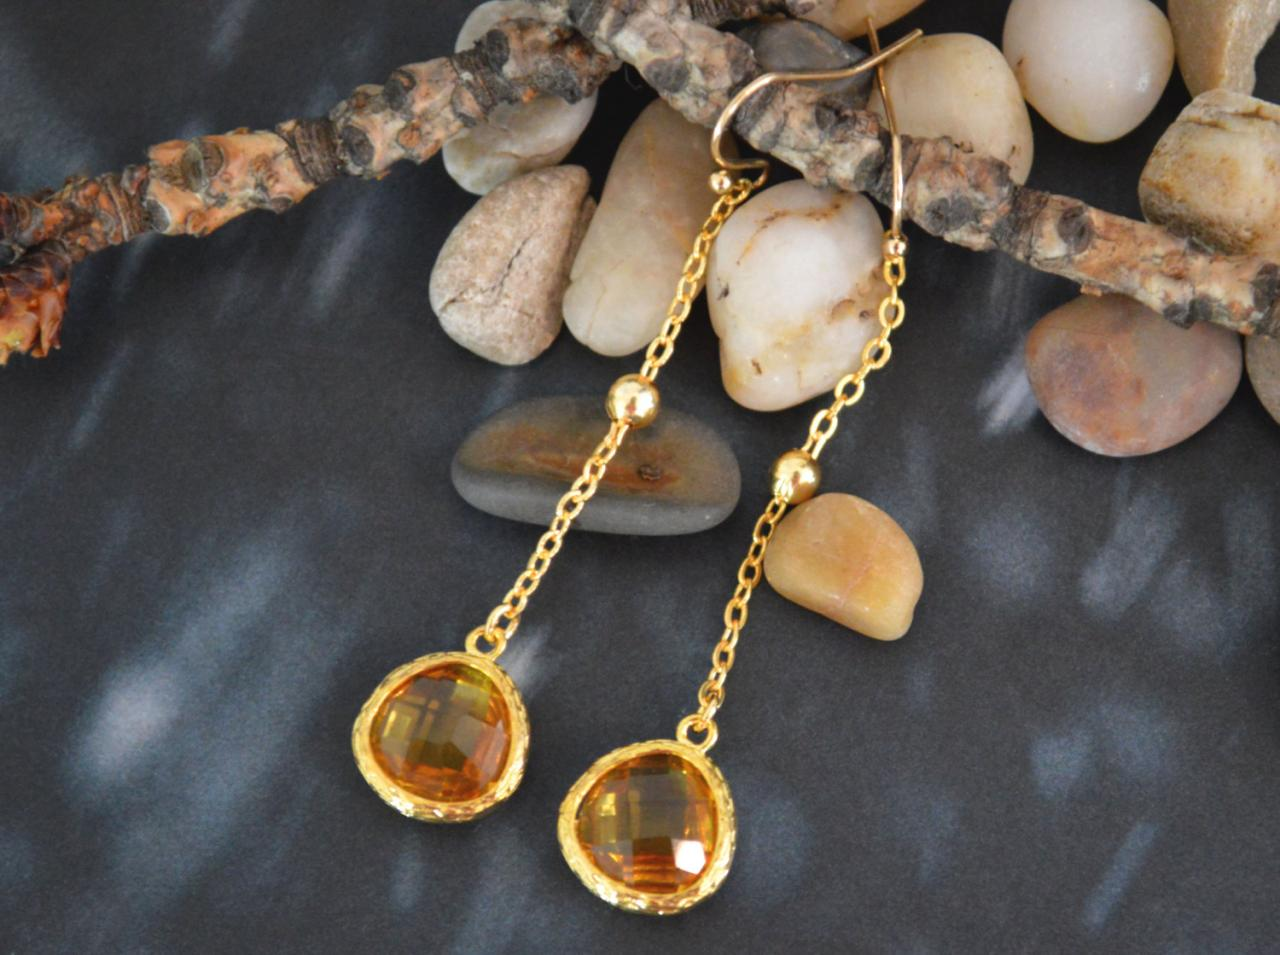 SALE) B-009 Glass topaz earrings, Bezel set drop earring, Dangle earrings,Gold plated ball chain/Special gifts/ Everyday jewelry/